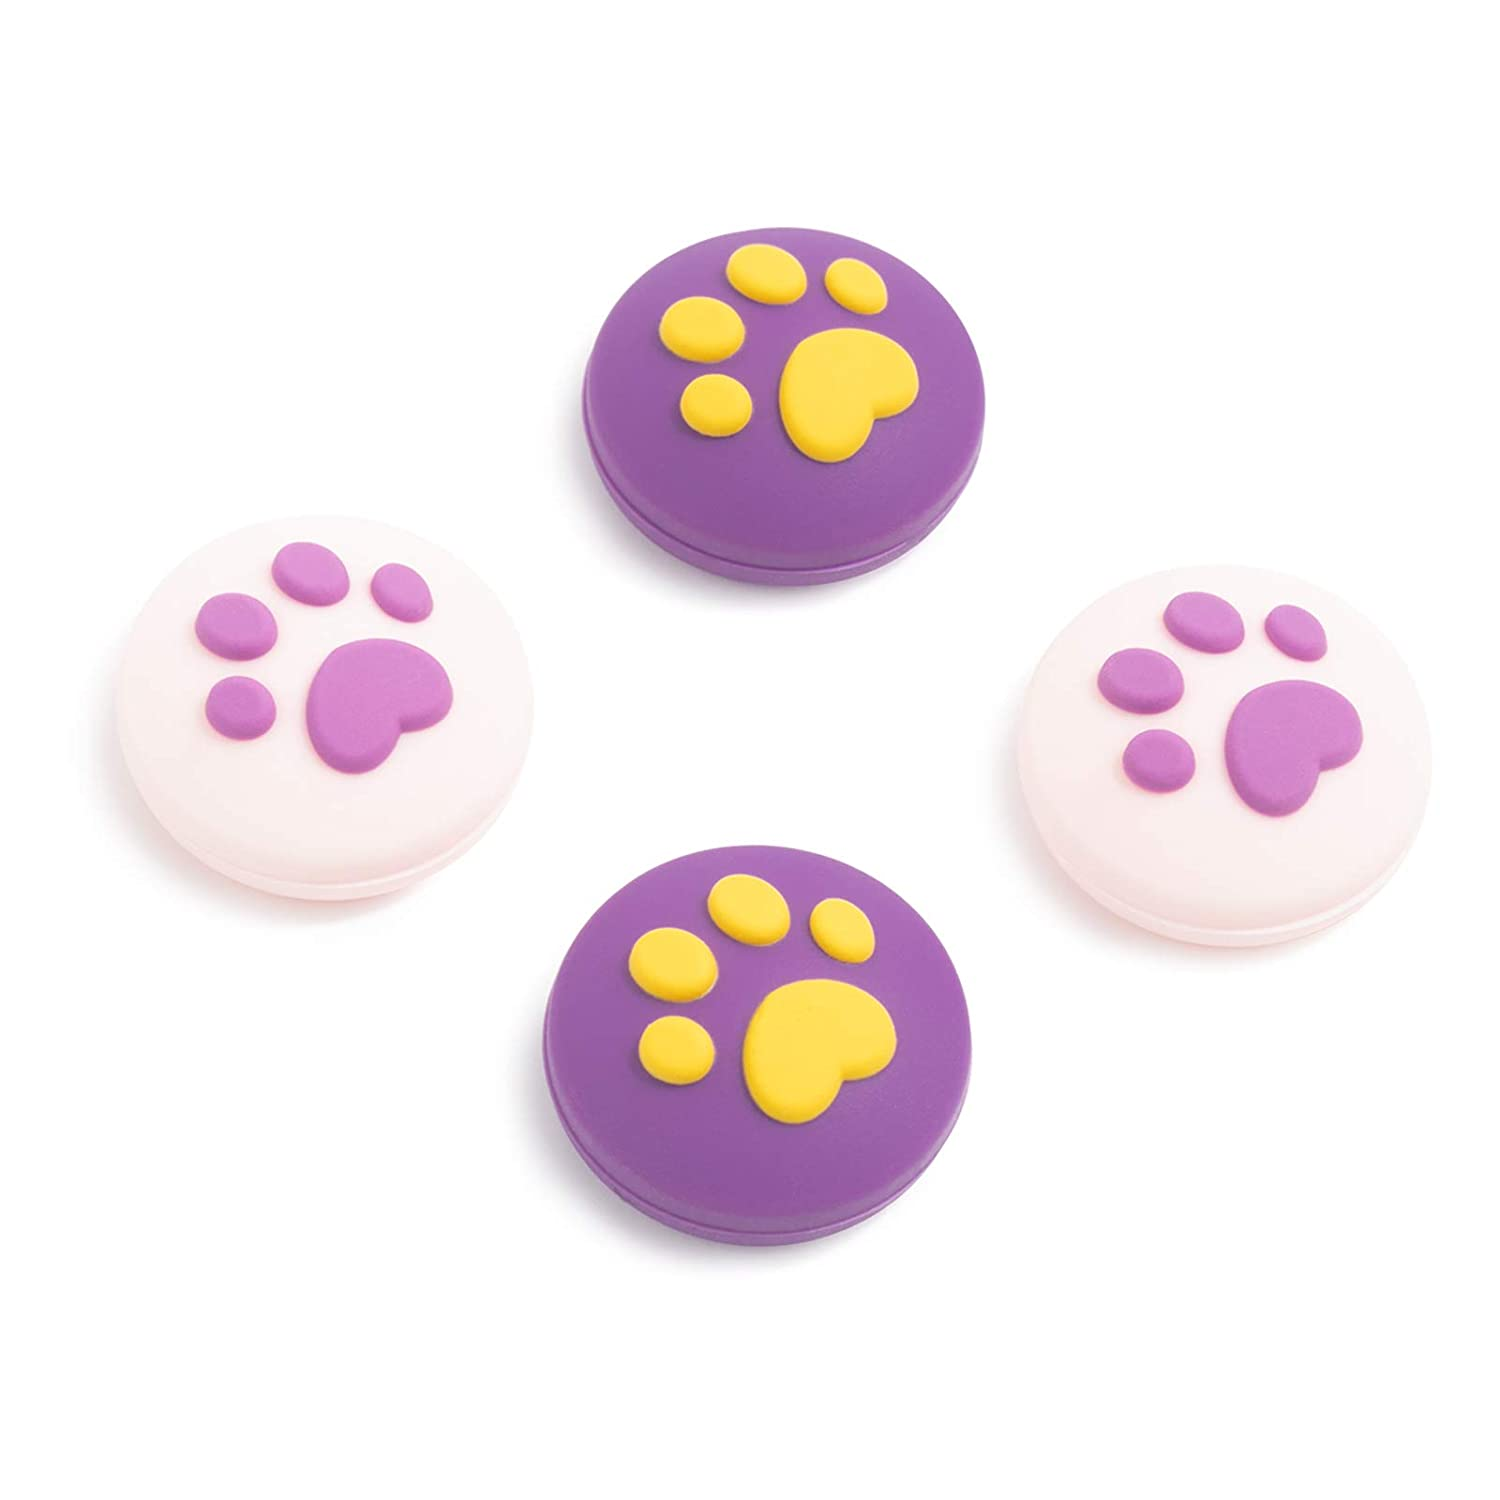 GeekShare Cute Cat Paw Theme Thumb Grip Caps,Compatible with Nintendo Switch & Switch Lite Only,Soft Silicone Joystick Cover,4PICS -- Pruple Crocus